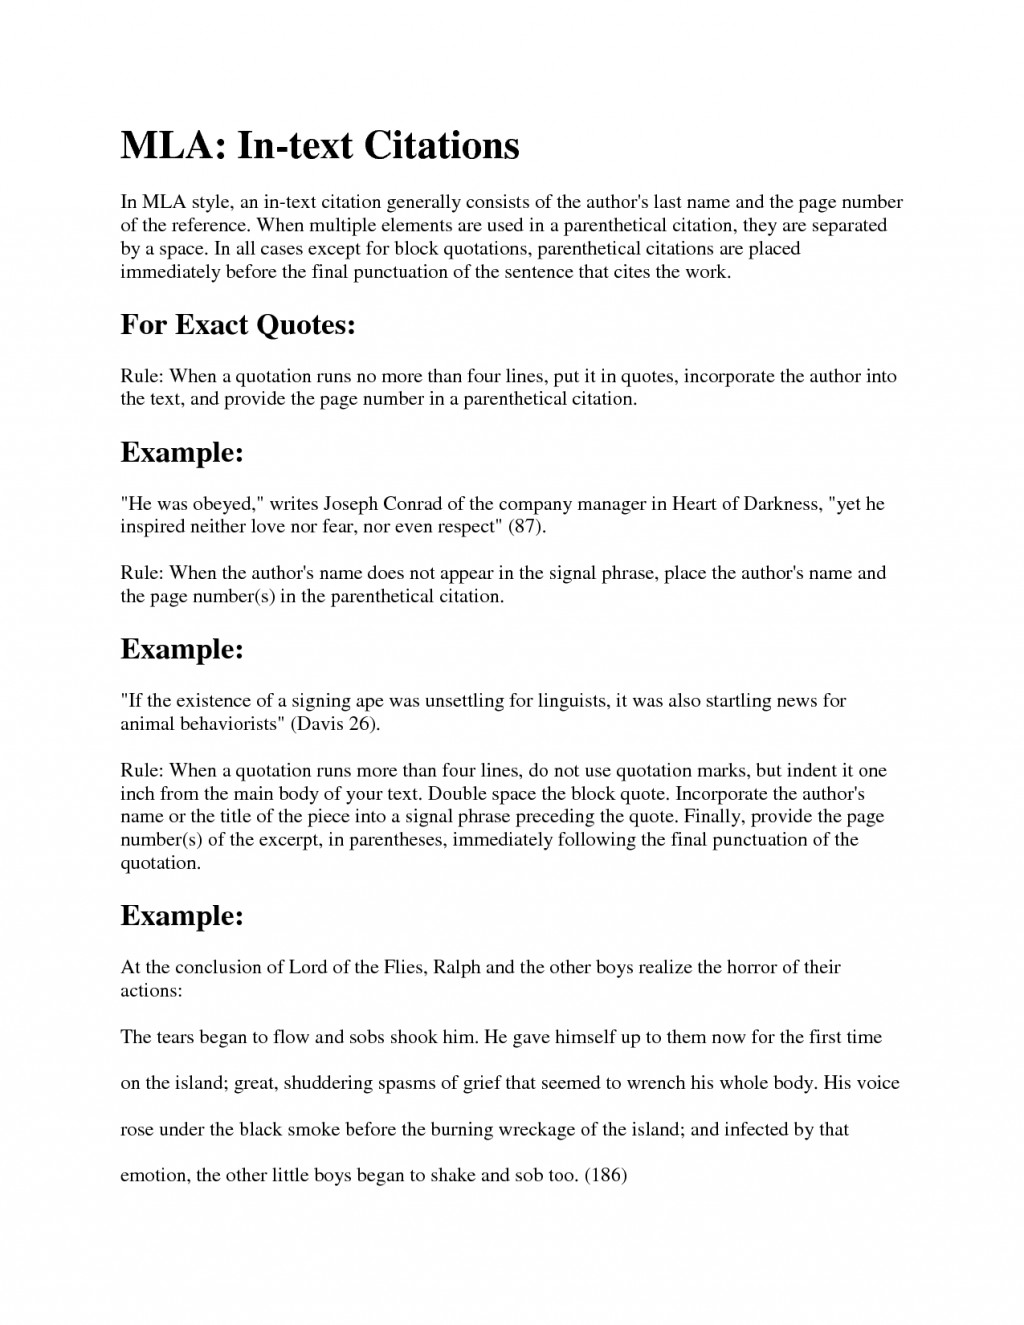 015 Mla Citation Example Research Paper Lord Of The Flies Resume Examples Images Cover Letter Striking Format Encyclopedia Article Book Purdue Owl Large